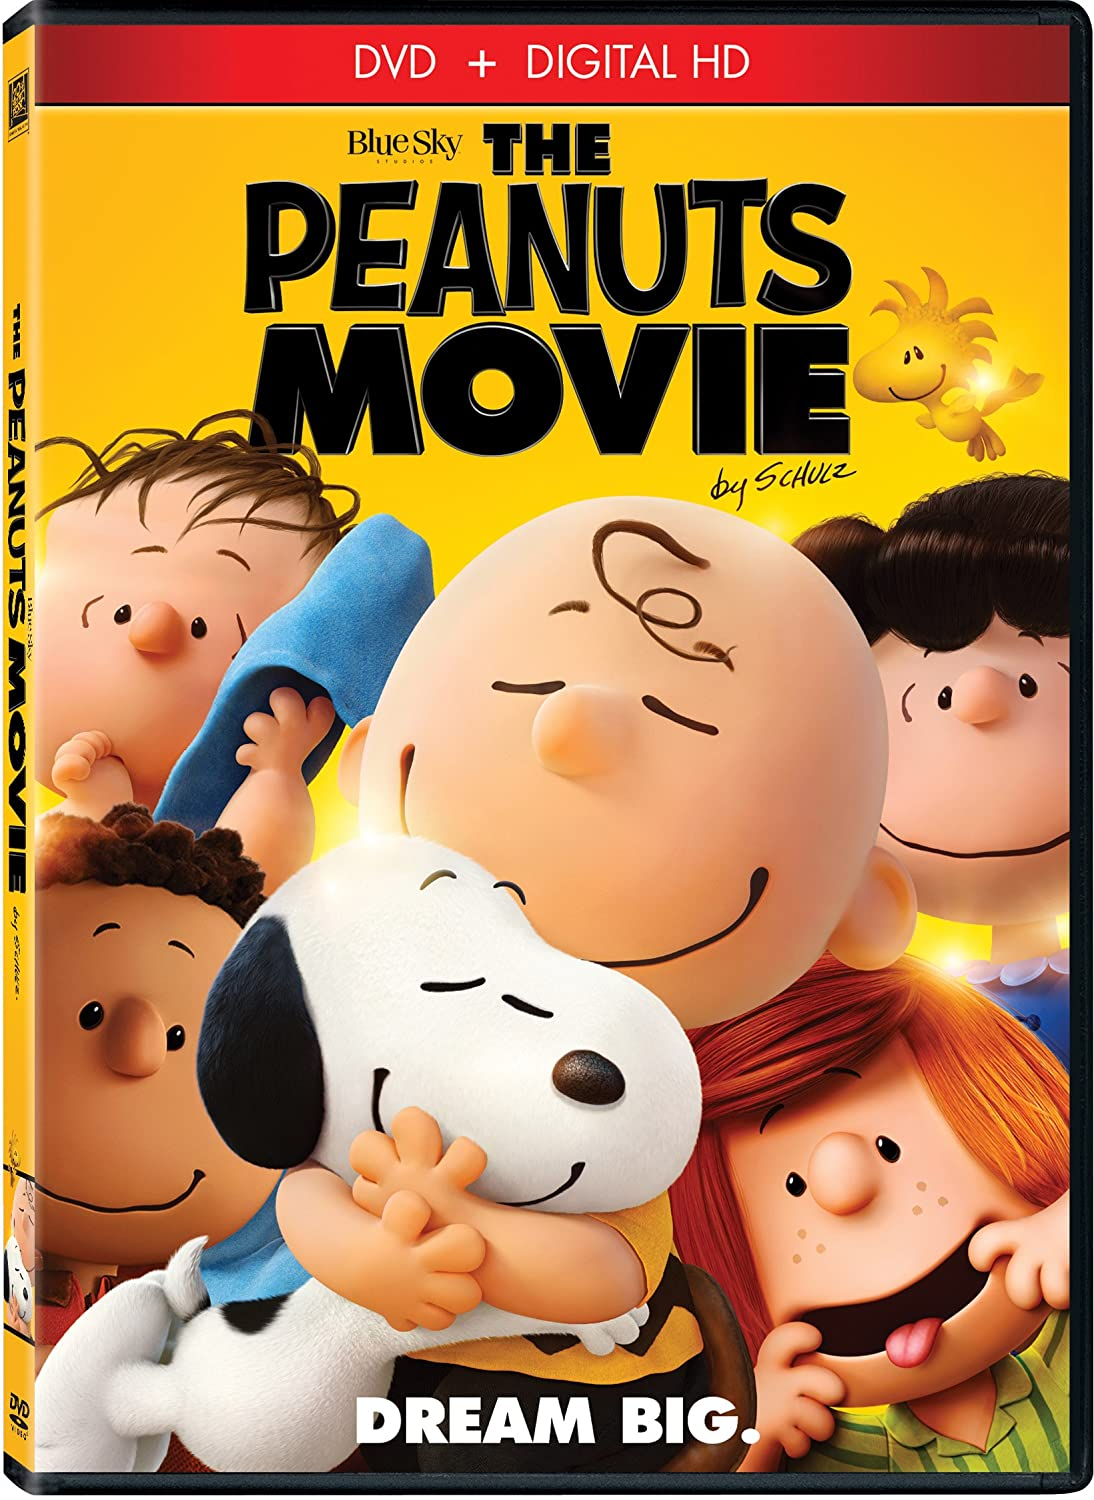 amazon com peanuts movie the noah schnapp alexander garfin